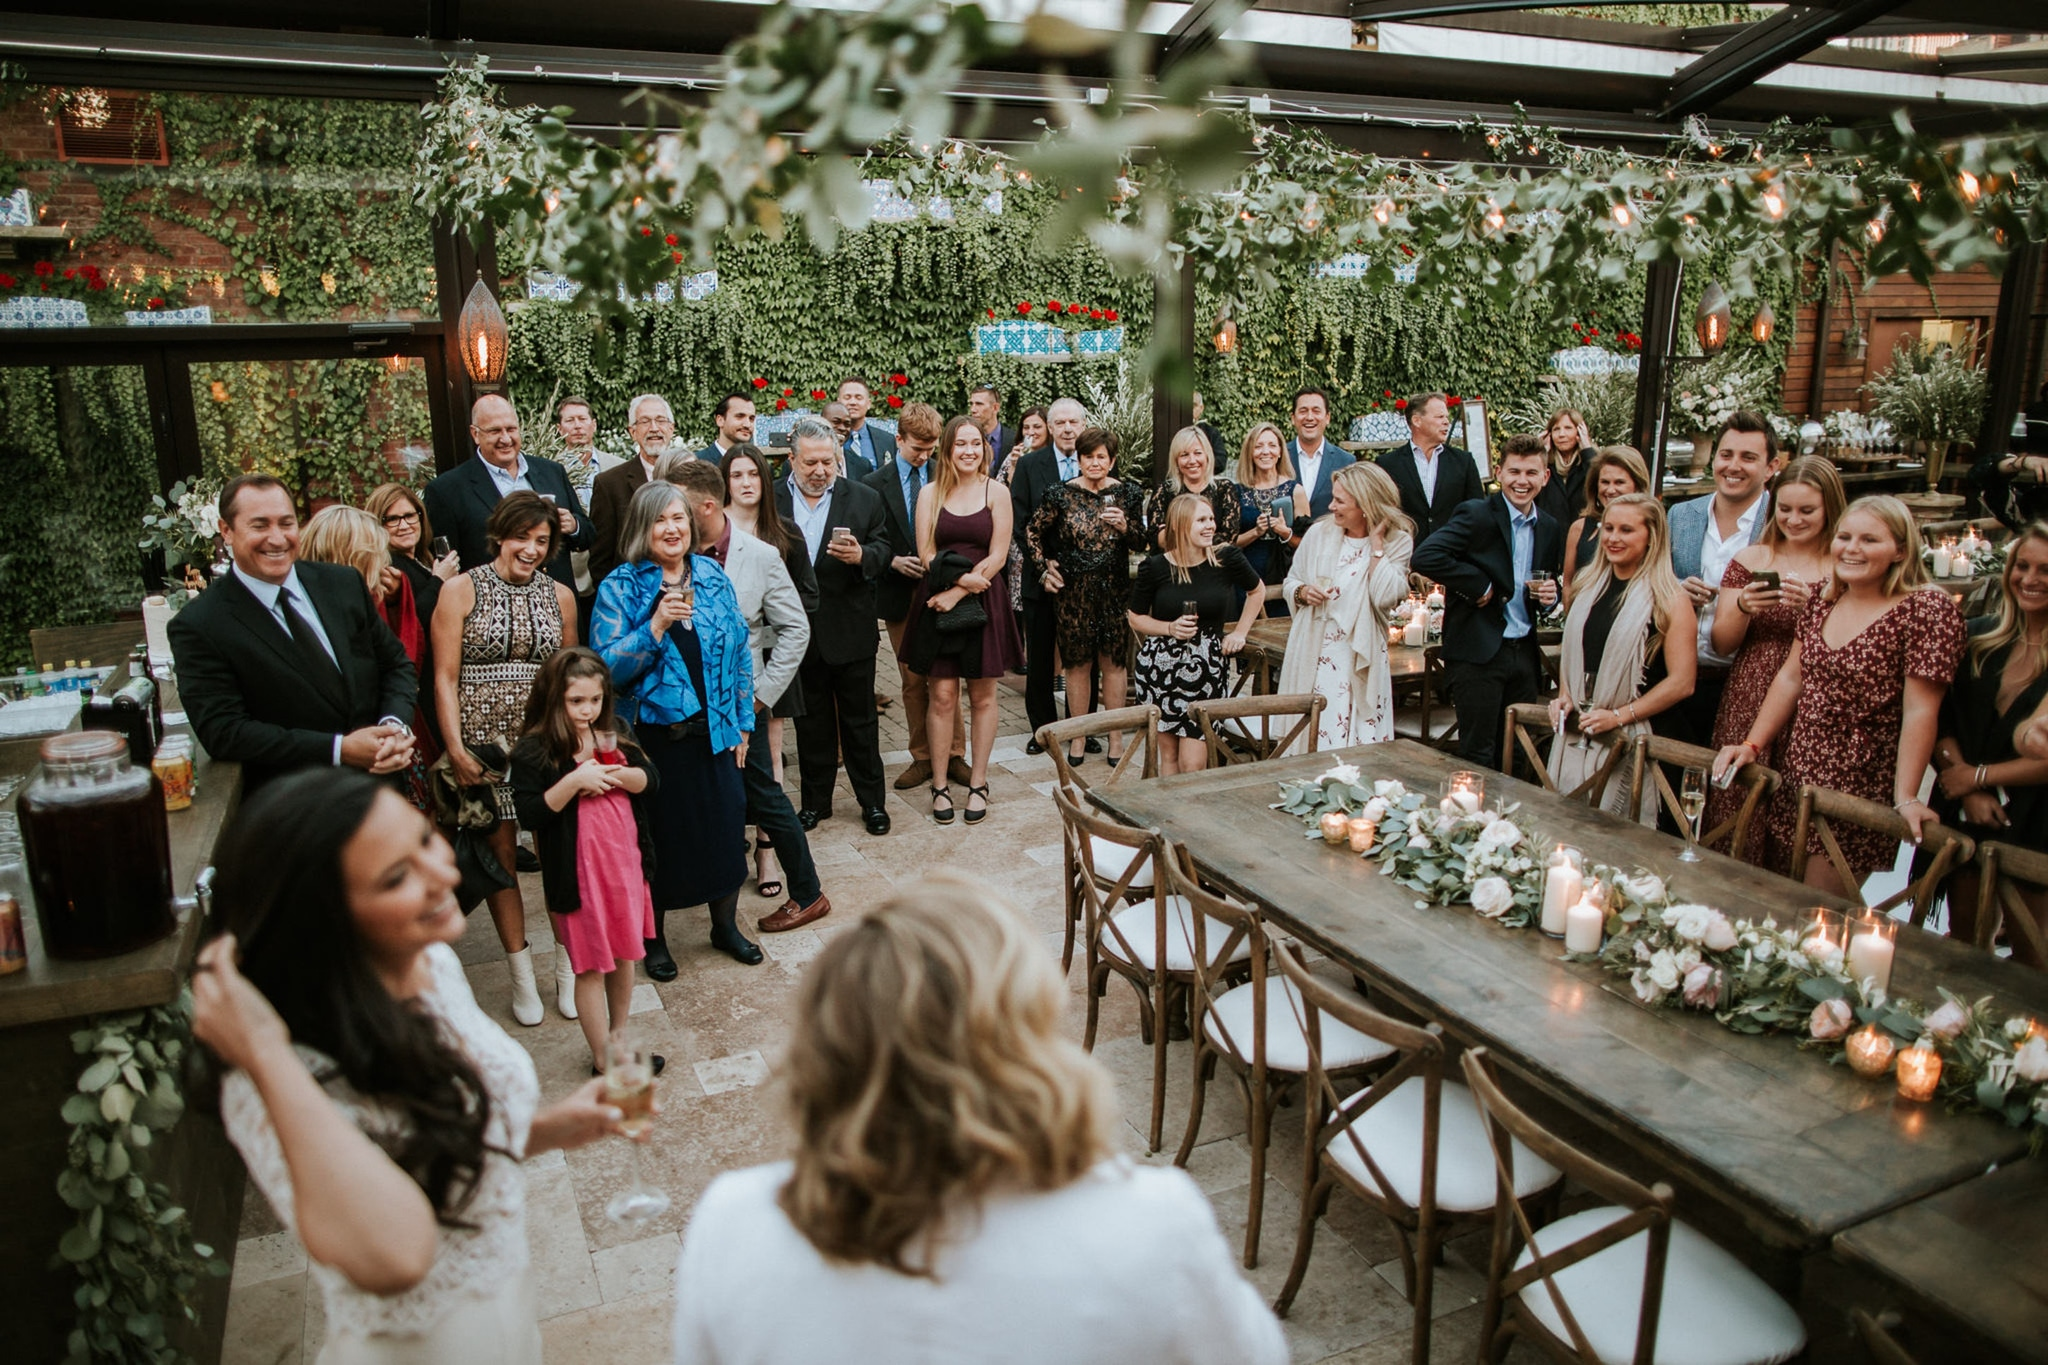 Rustic venue with greenery wedding